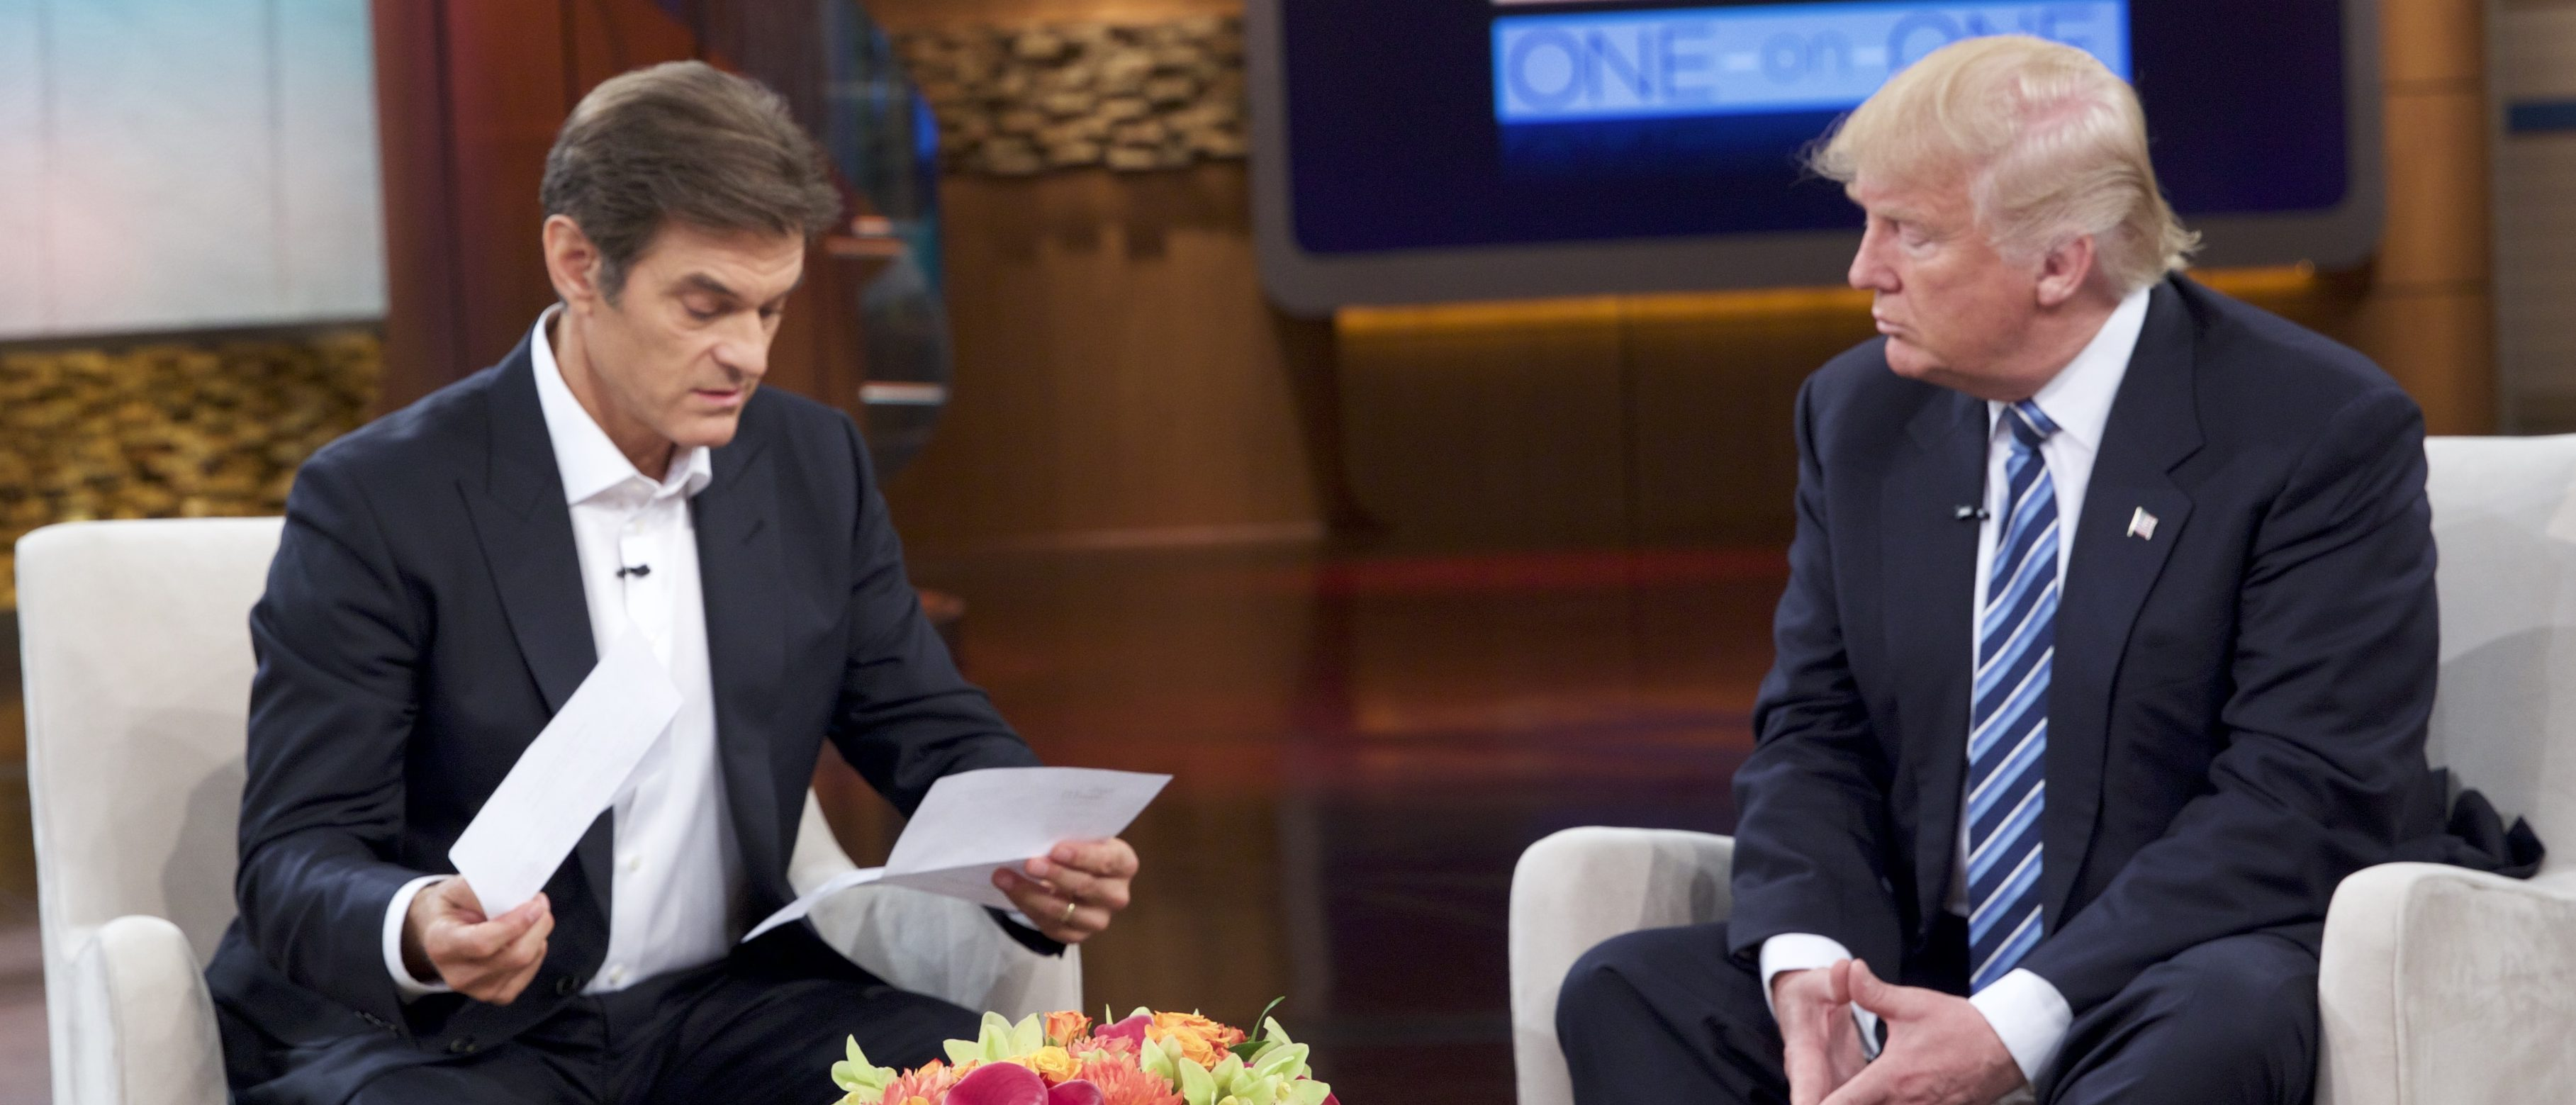 Donald Trump and Dr. Oz